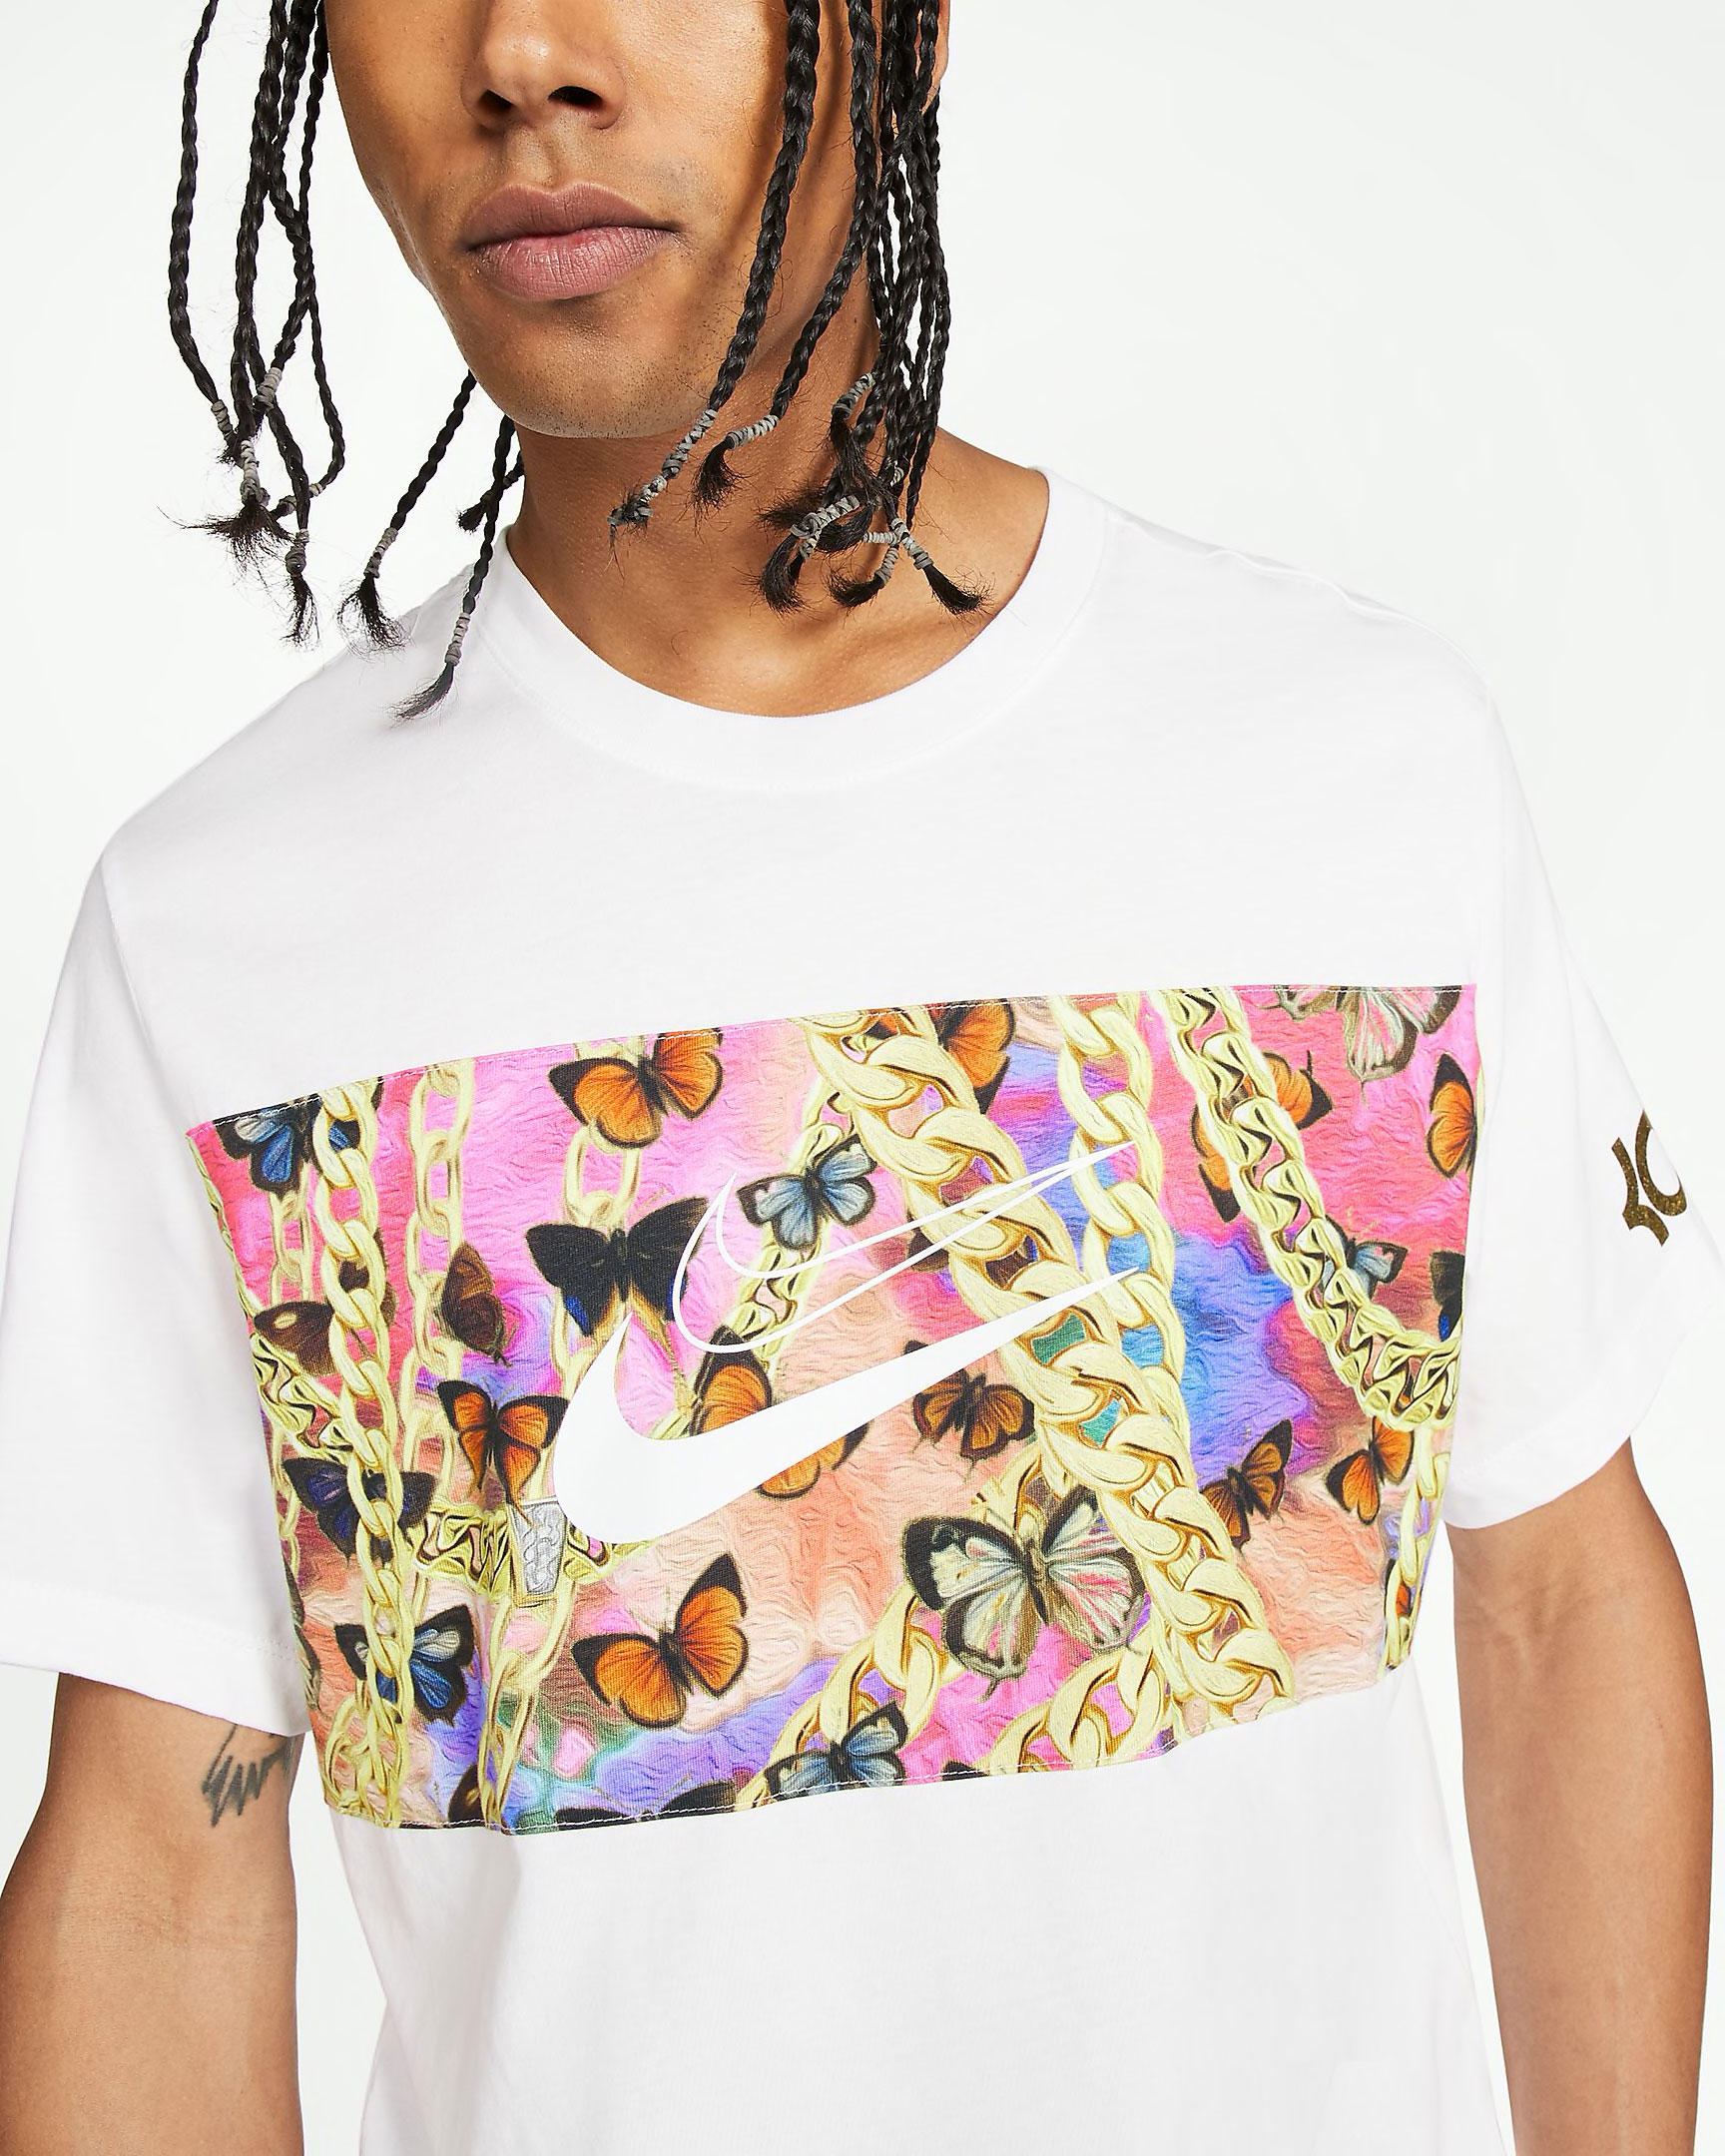 nike-kd-13-hype-butterflies-and-chains-shirt-1